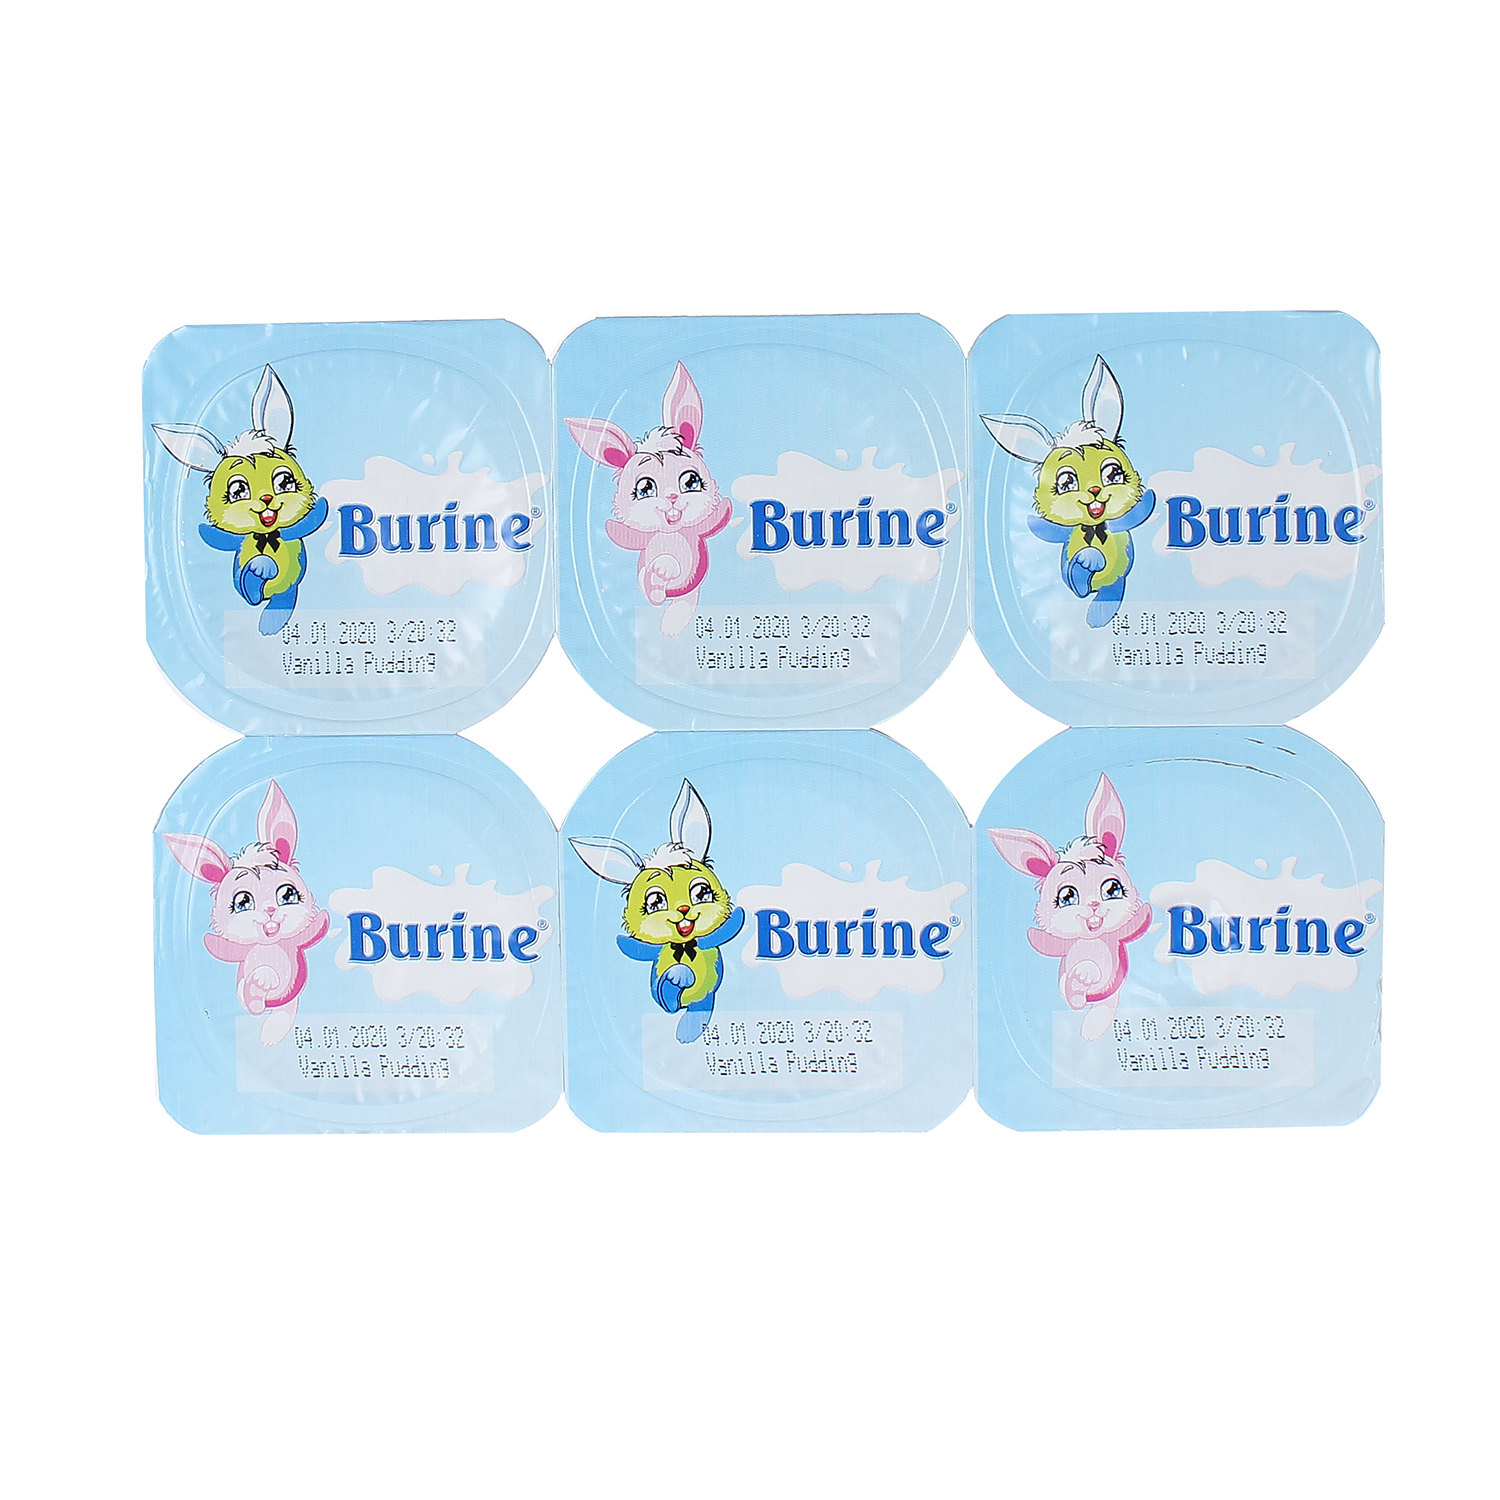 Pudding Burine Vani 6x50g